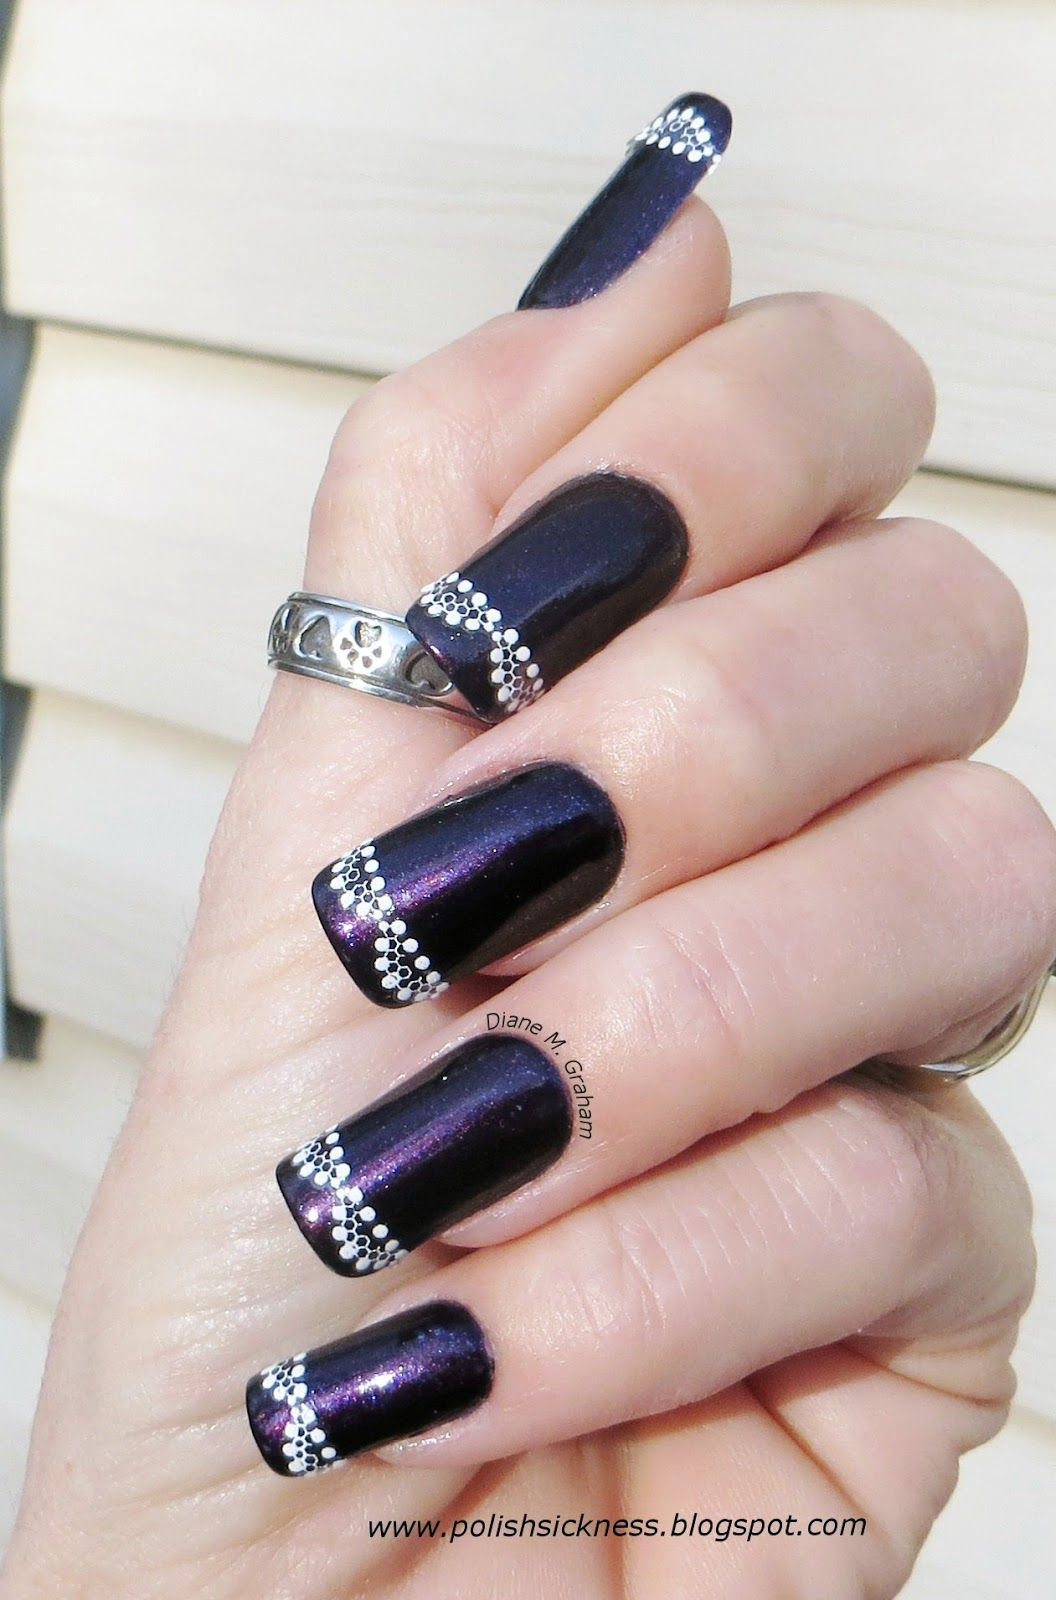 Chanel Taboo on the blog today! www.polishsickness.blogspot.come Follow me on FB at Polish Sickness and Instagram, PolishSickness!